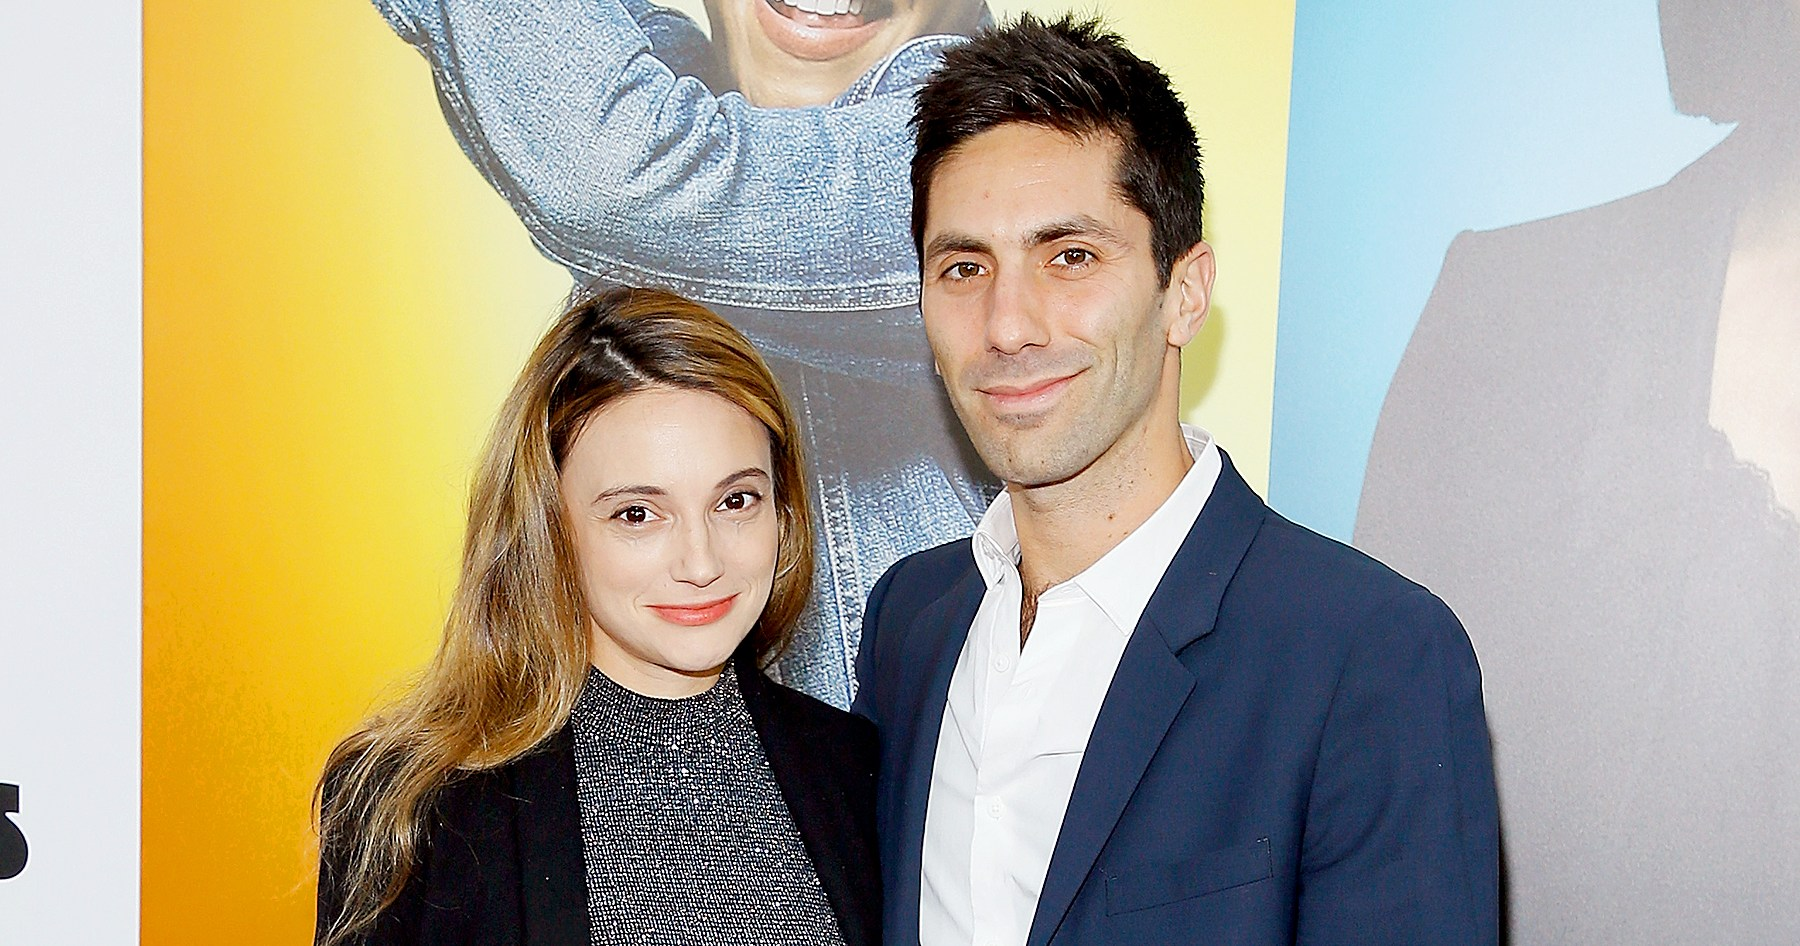 Nev Schulman's Pregnant Wife 'Melted Down' Over Weight Gain